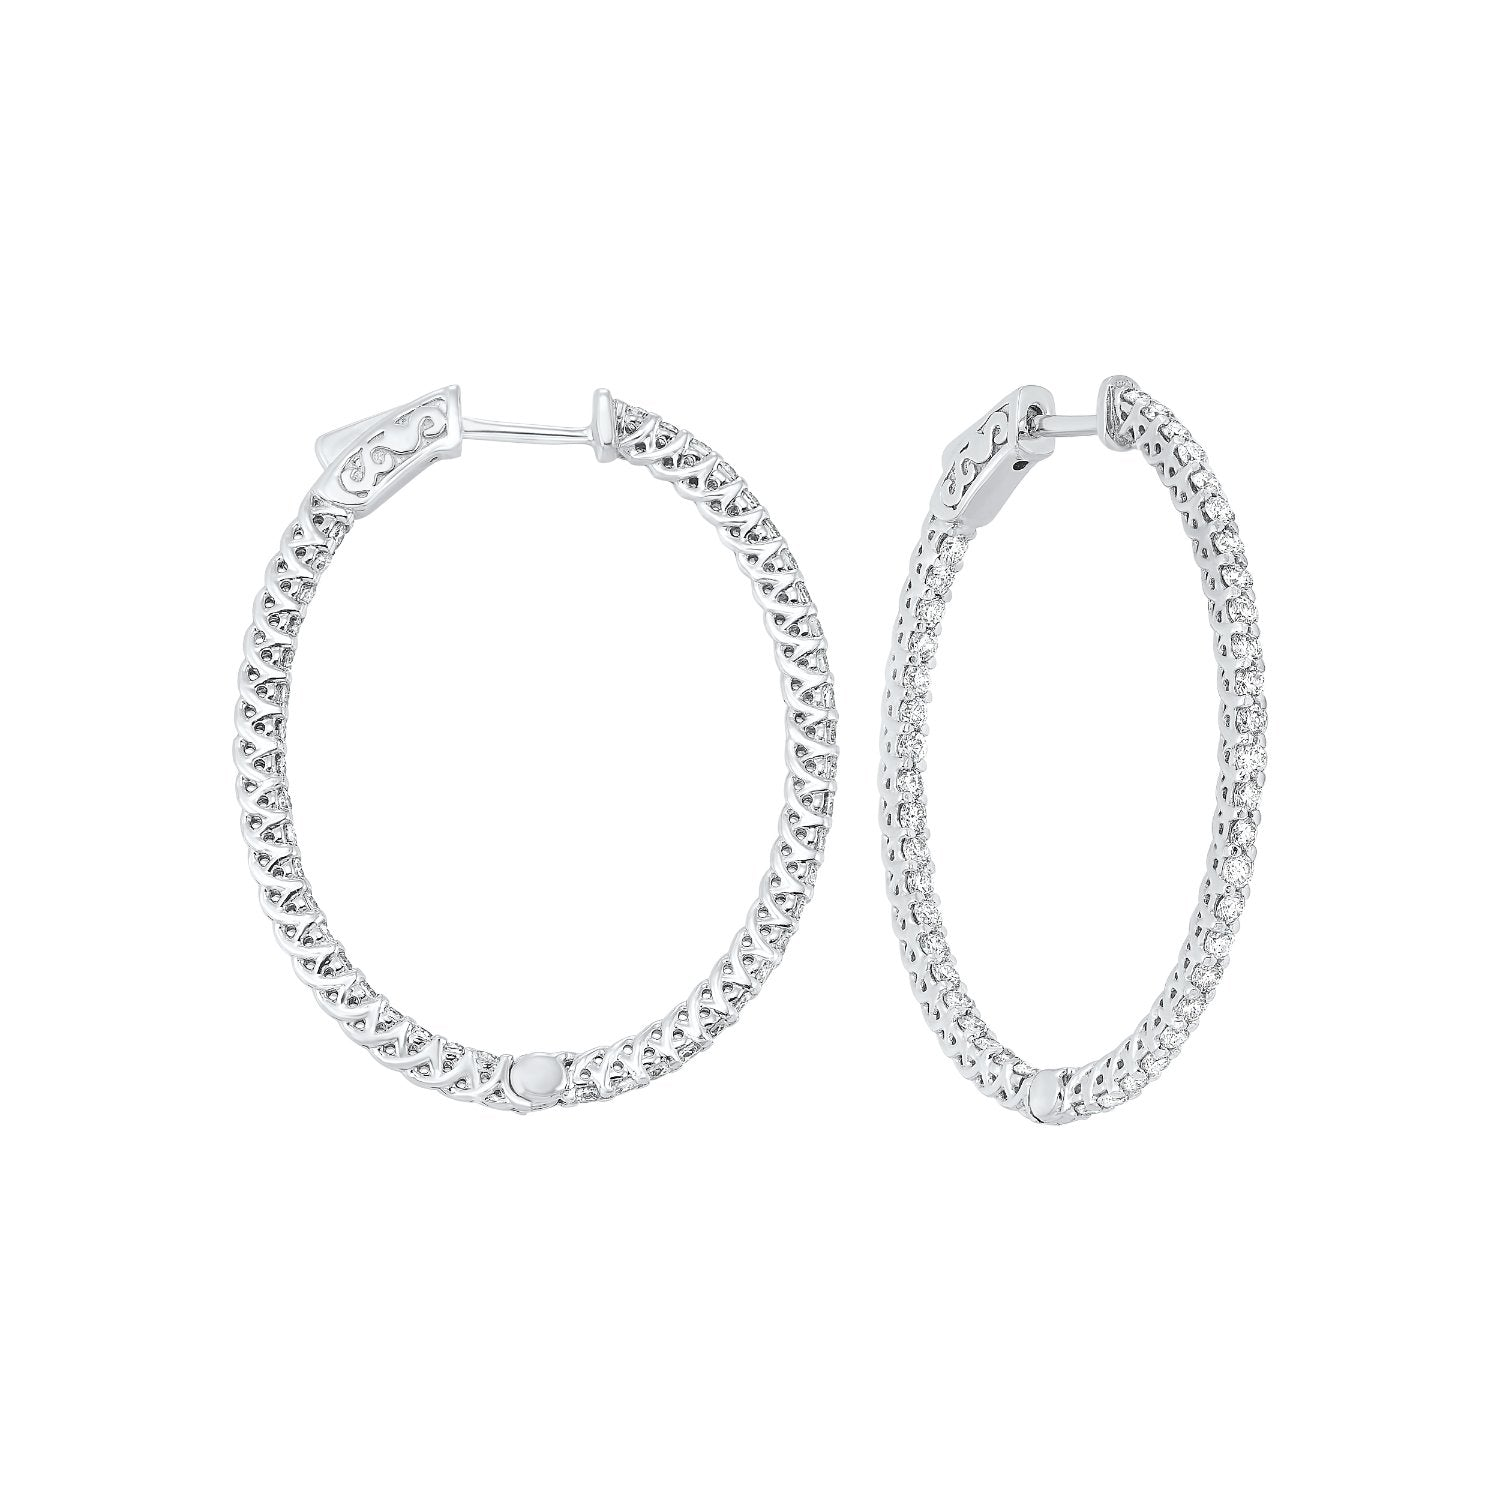 Delicate In-Out Diamond Hoop Earrings in 14K White Gold  (2 ct. tw.)